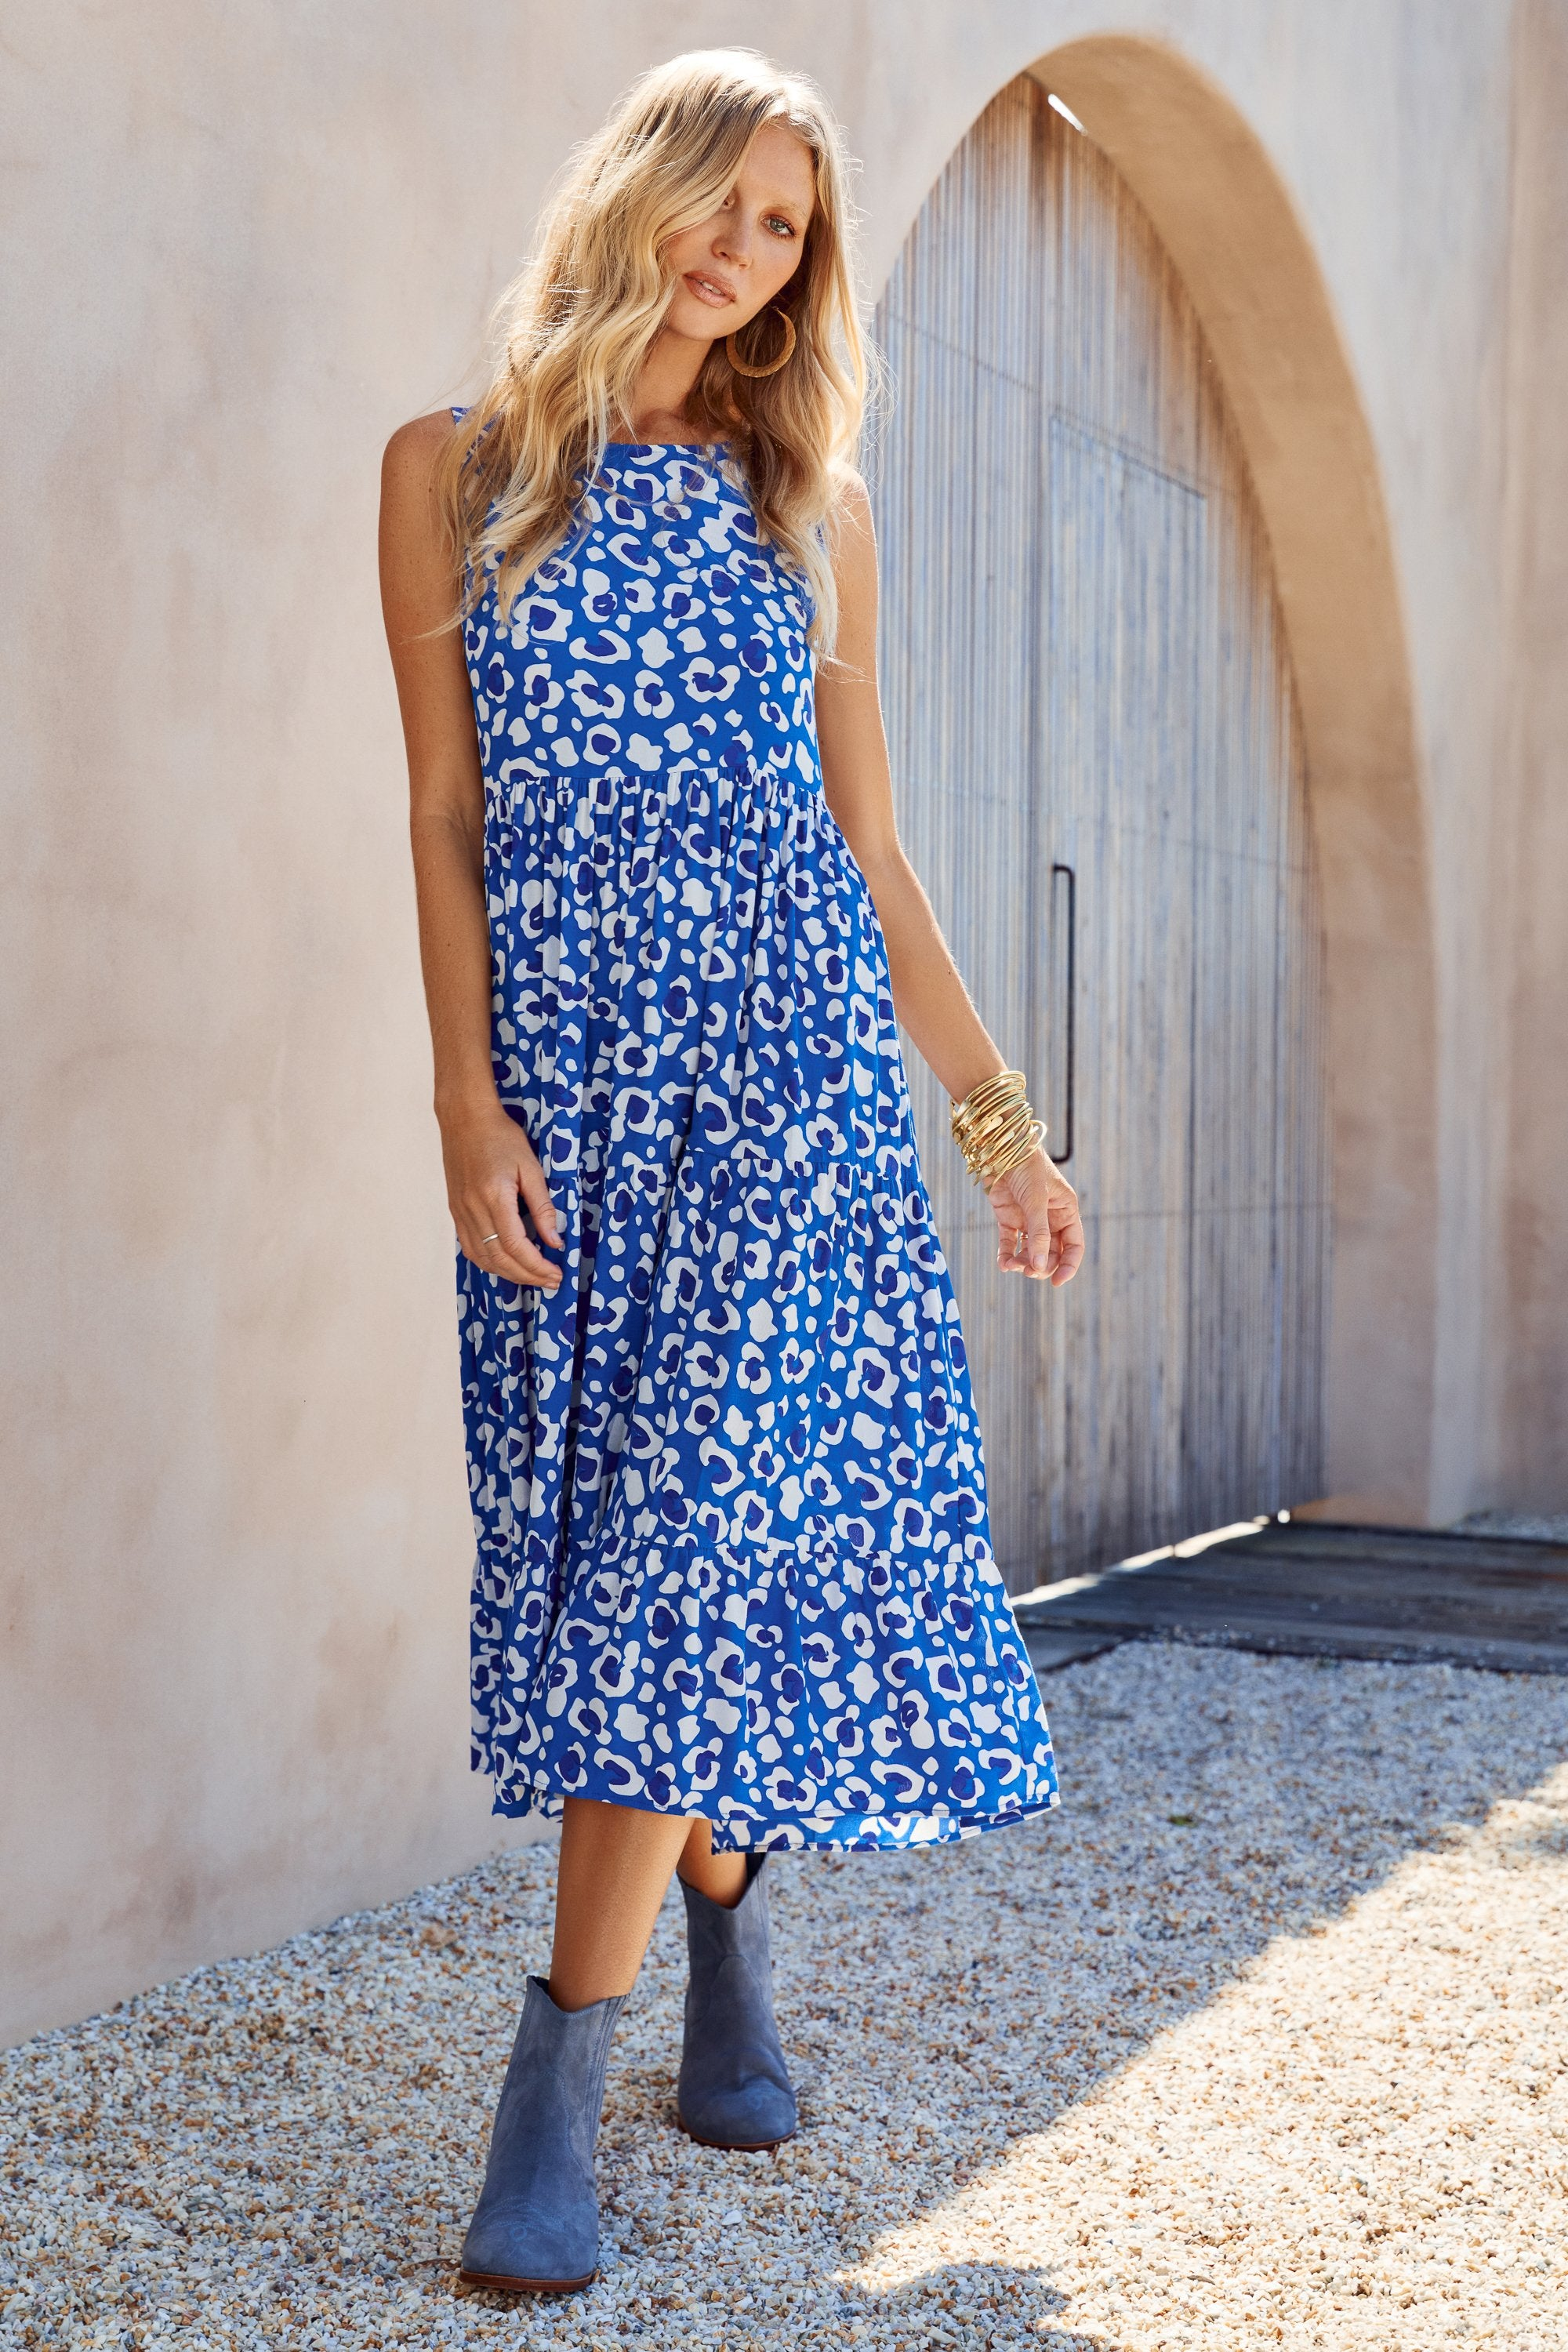 Olivia Midi Dress In Blue Leopard